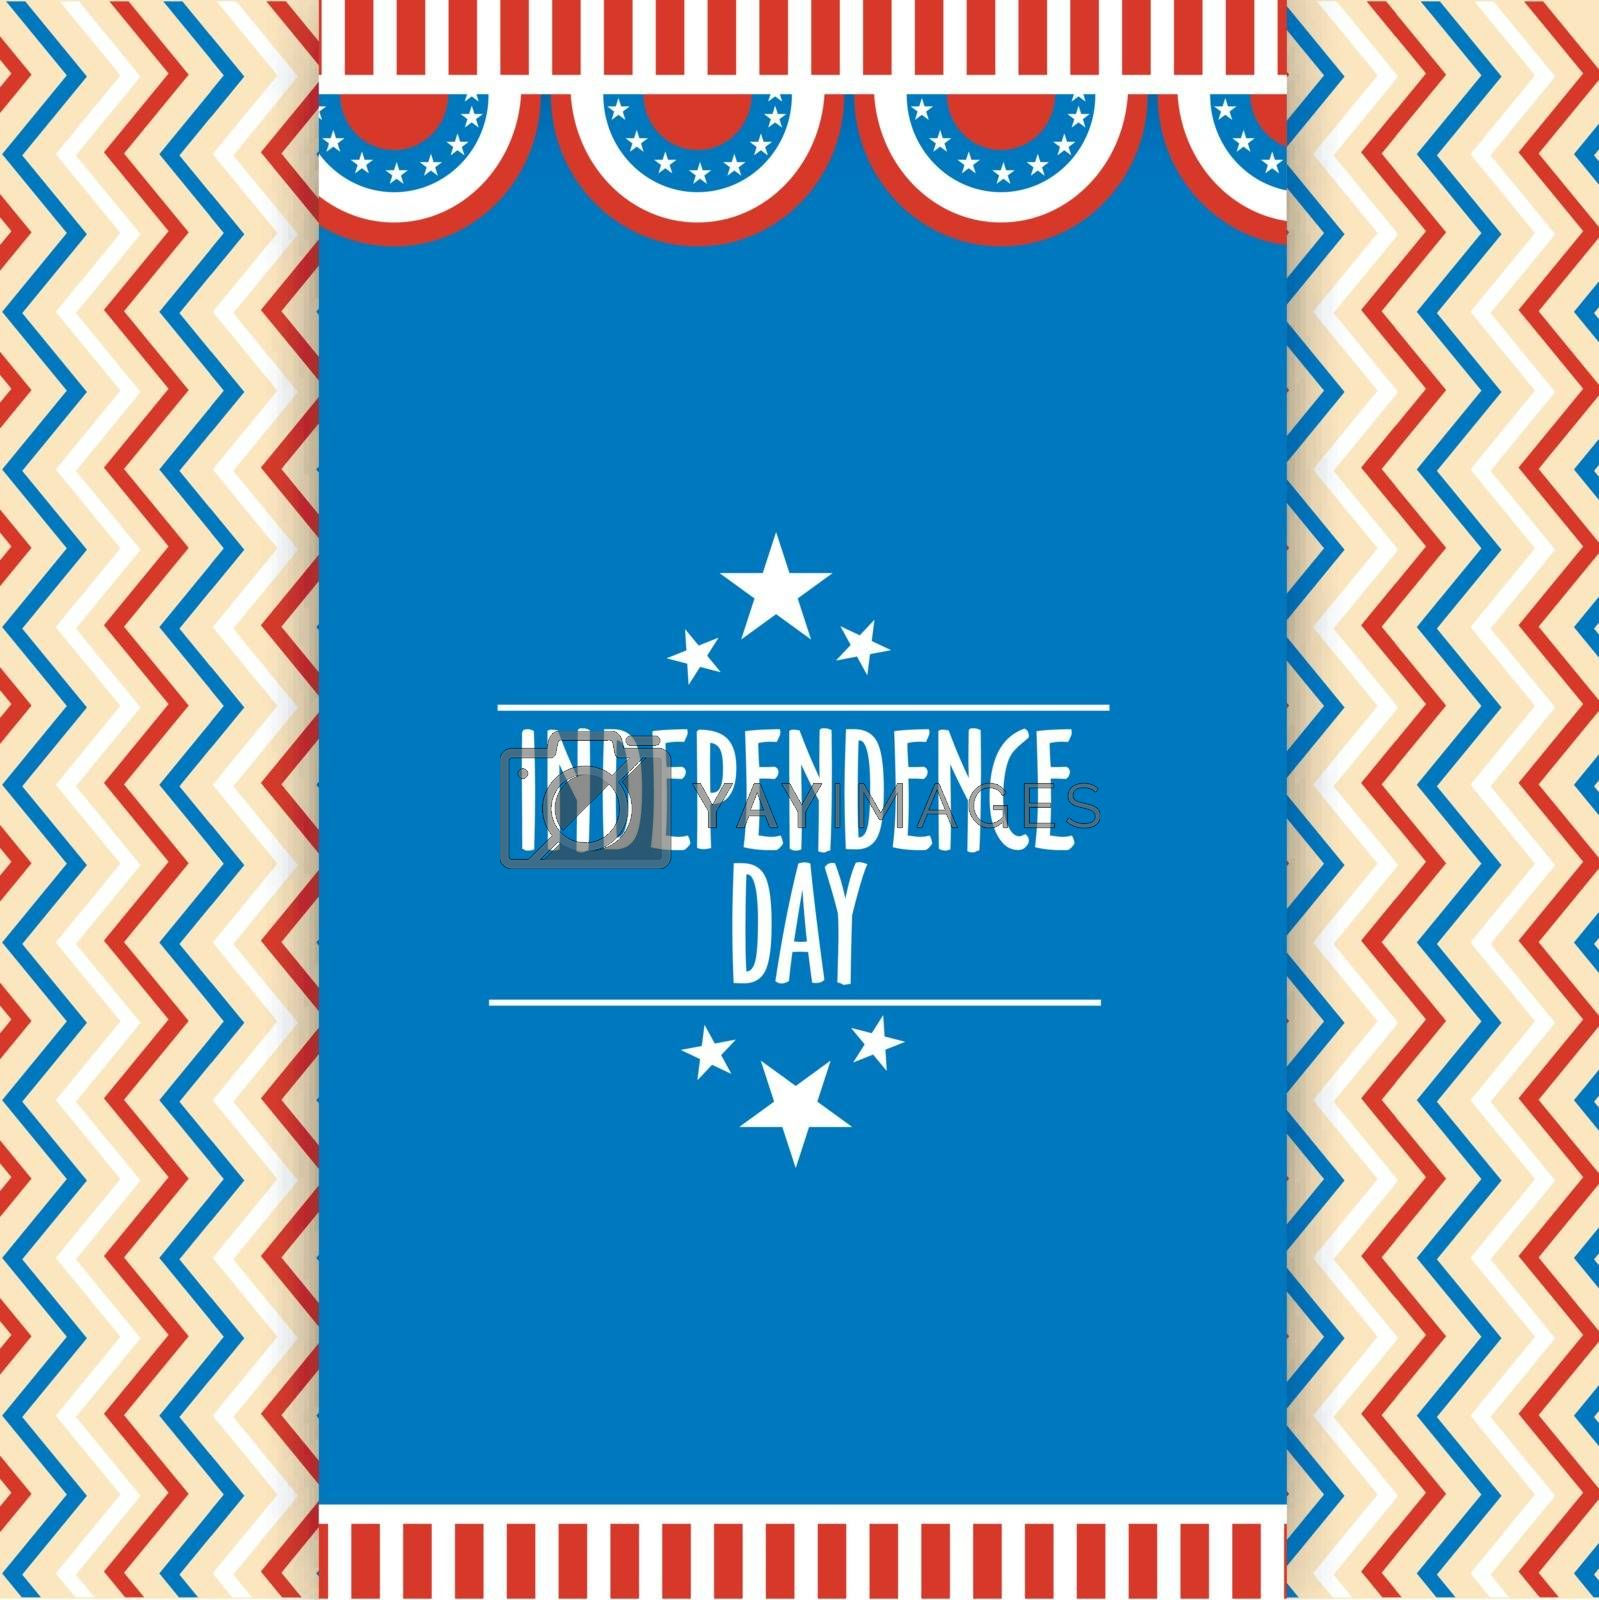 American Independence Day poster, banner. by aispl